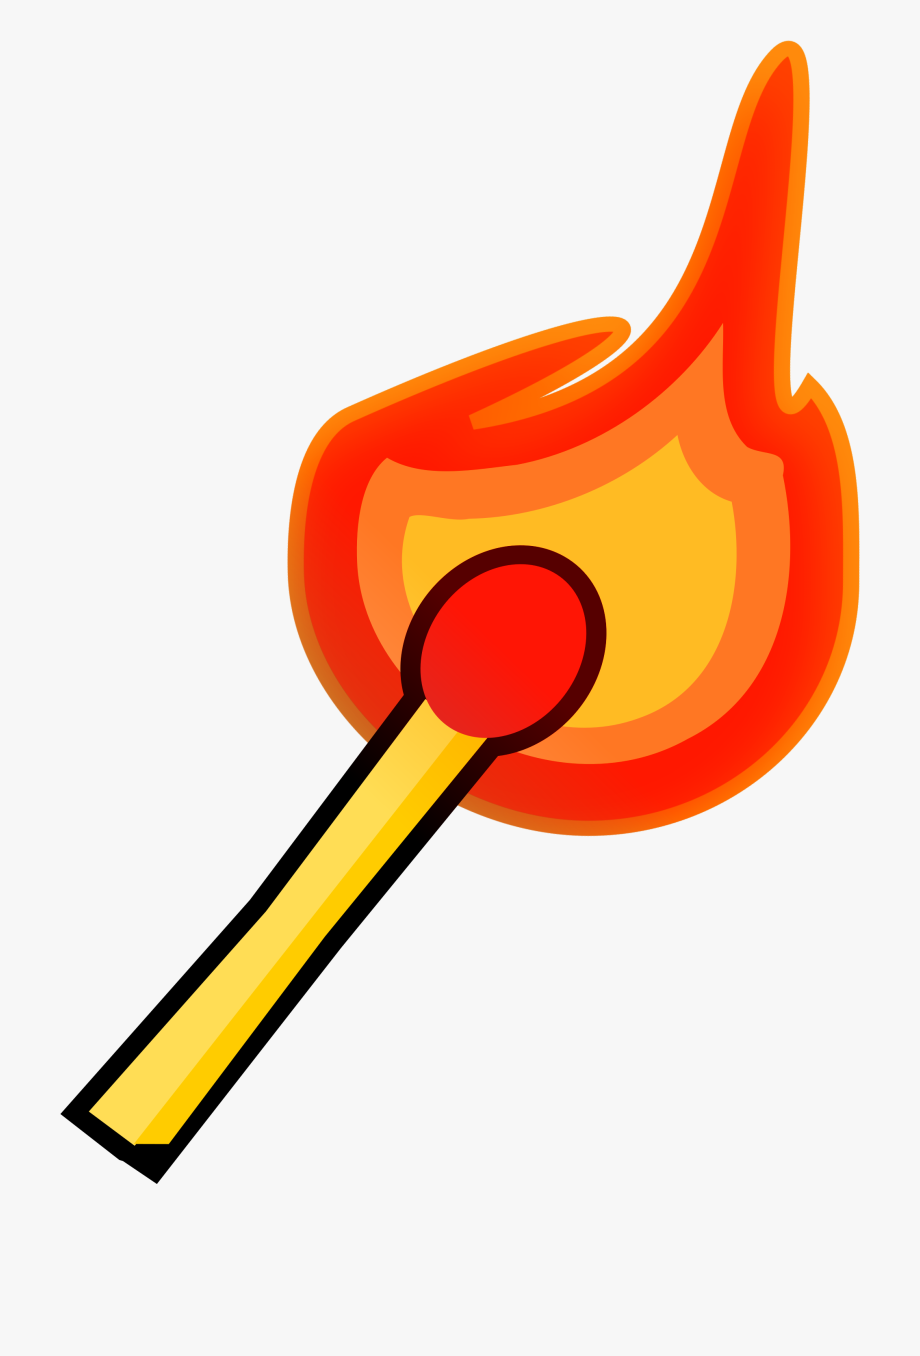 Fire flames at getdrawings. Match clipart